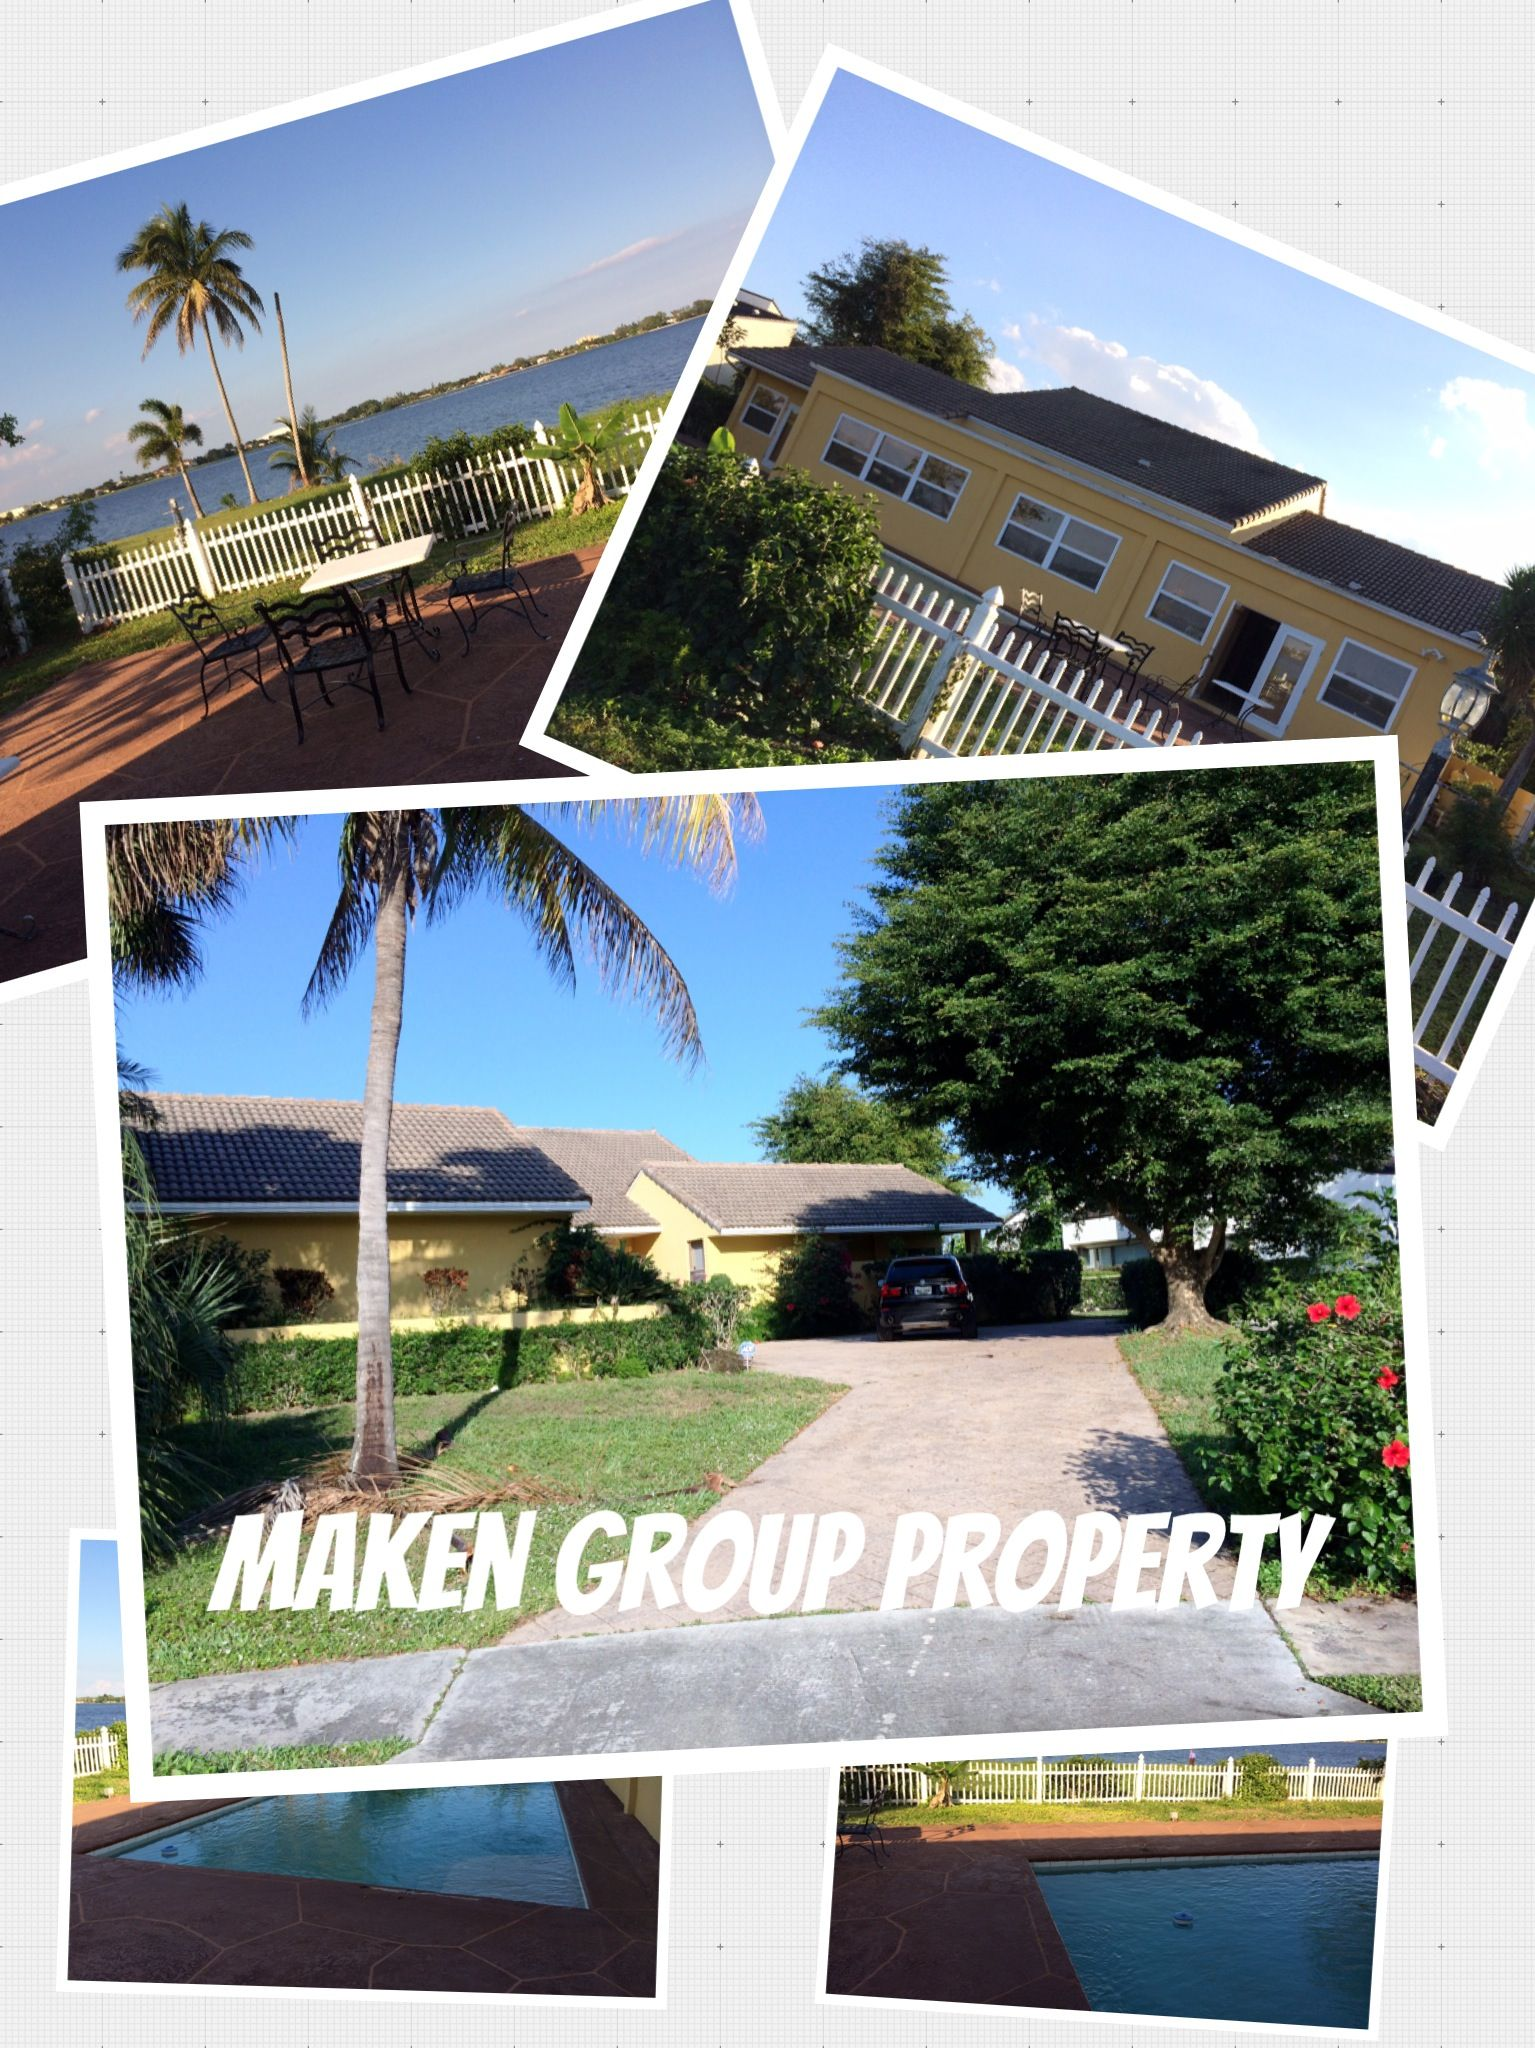 West Palm Beach Home for sale. Lakefront, luxury estate